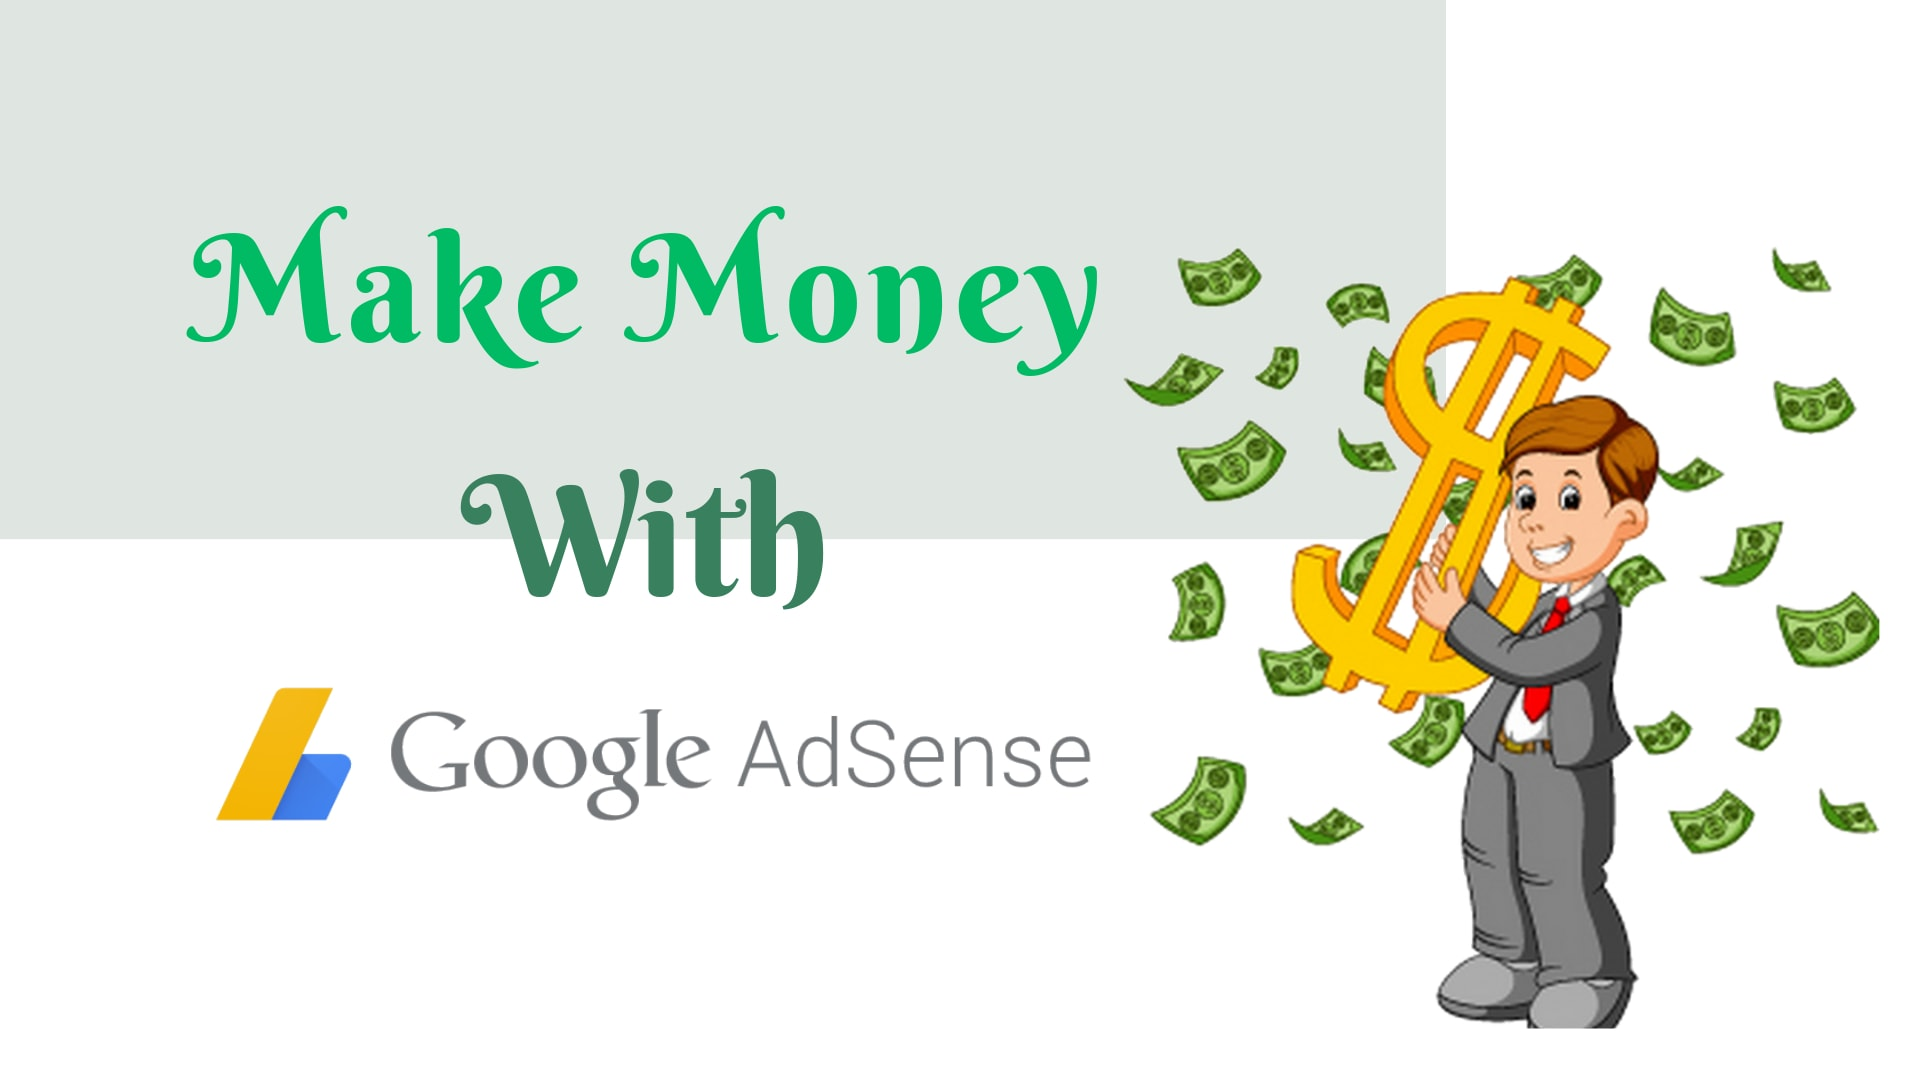 make money online with google adsense - 10 Legit Ways to Make Money Online With Google